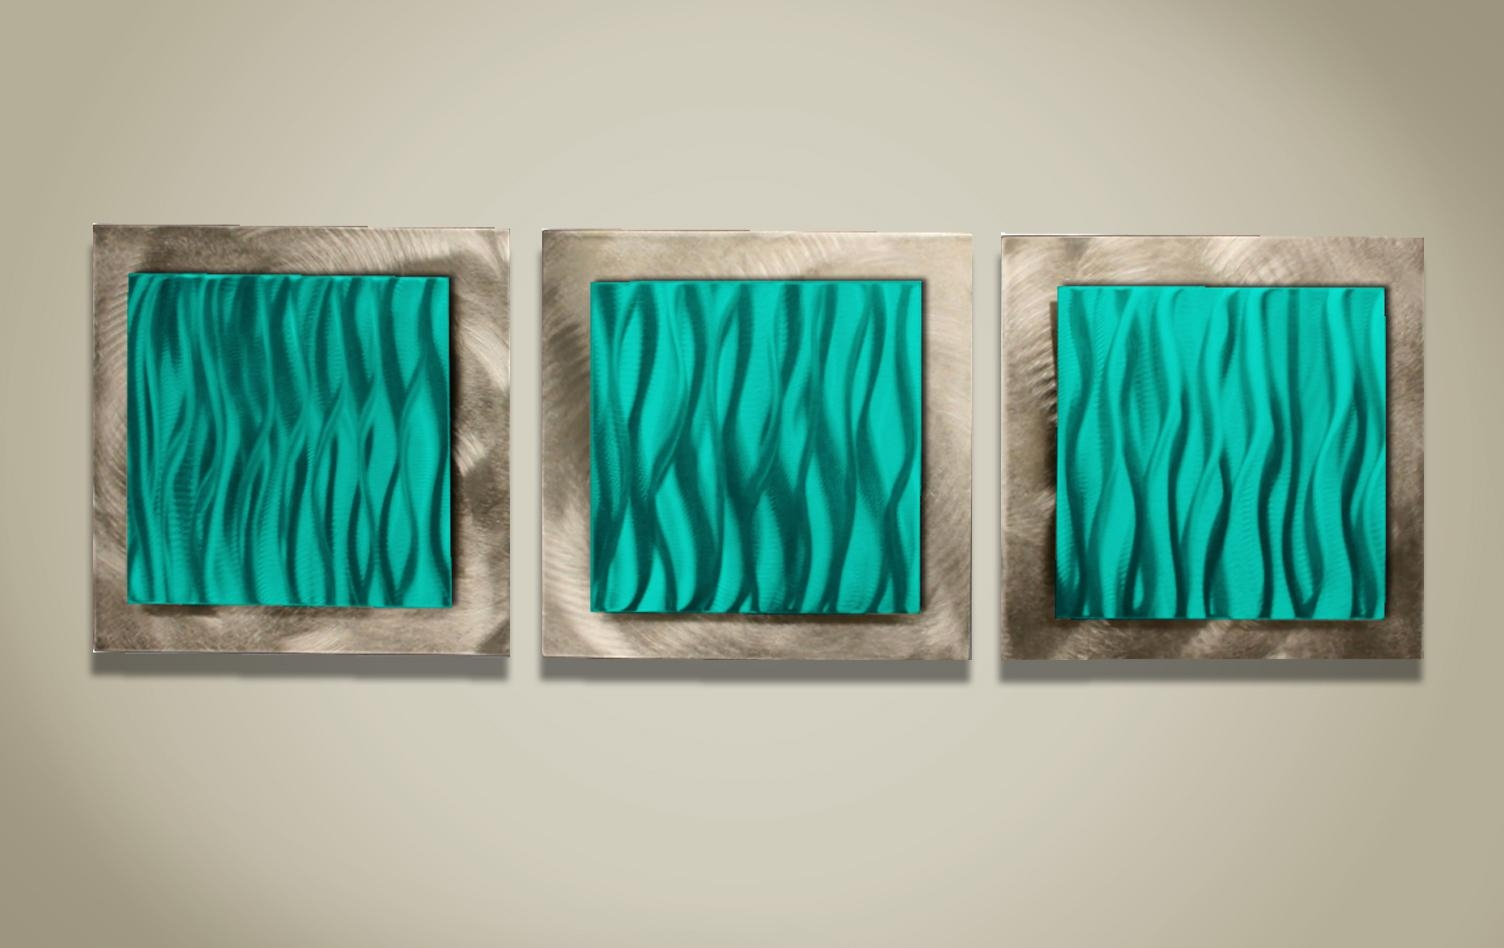 Wall Art Ideas Design : Teal Turquoise Metal Wall Art Sample Great With Regard To Glass Wall Art For Sale (Image 15 of 20)